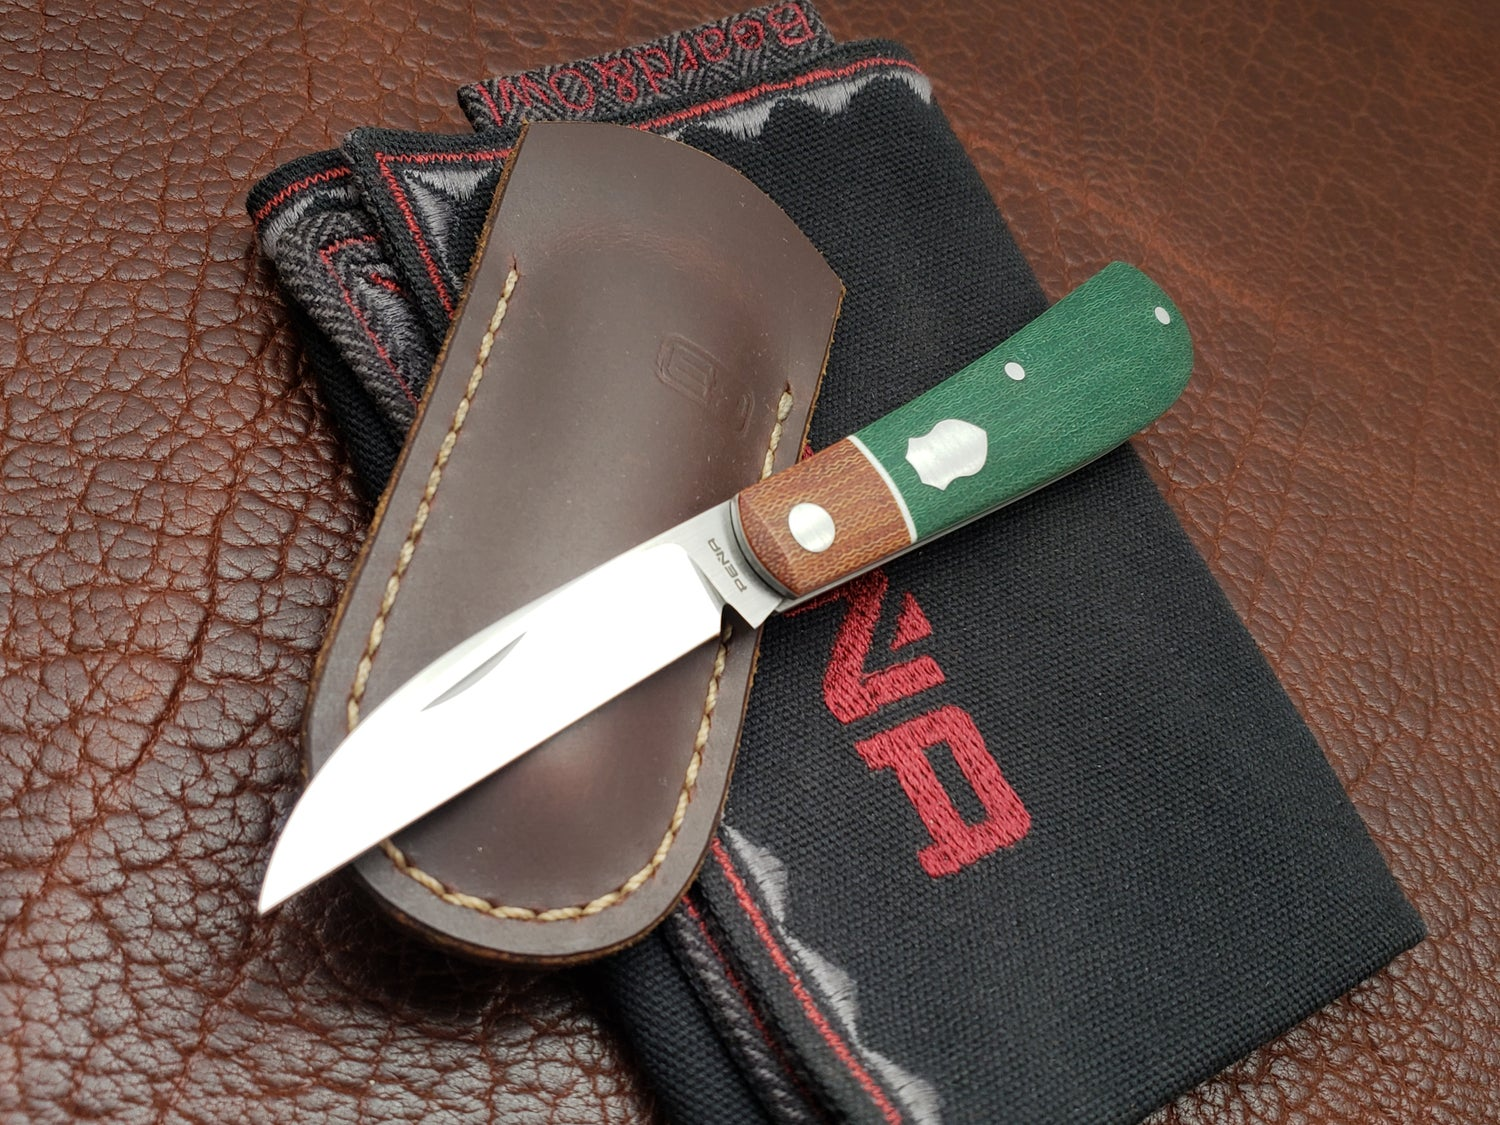 Image of Swayback Slipjoint